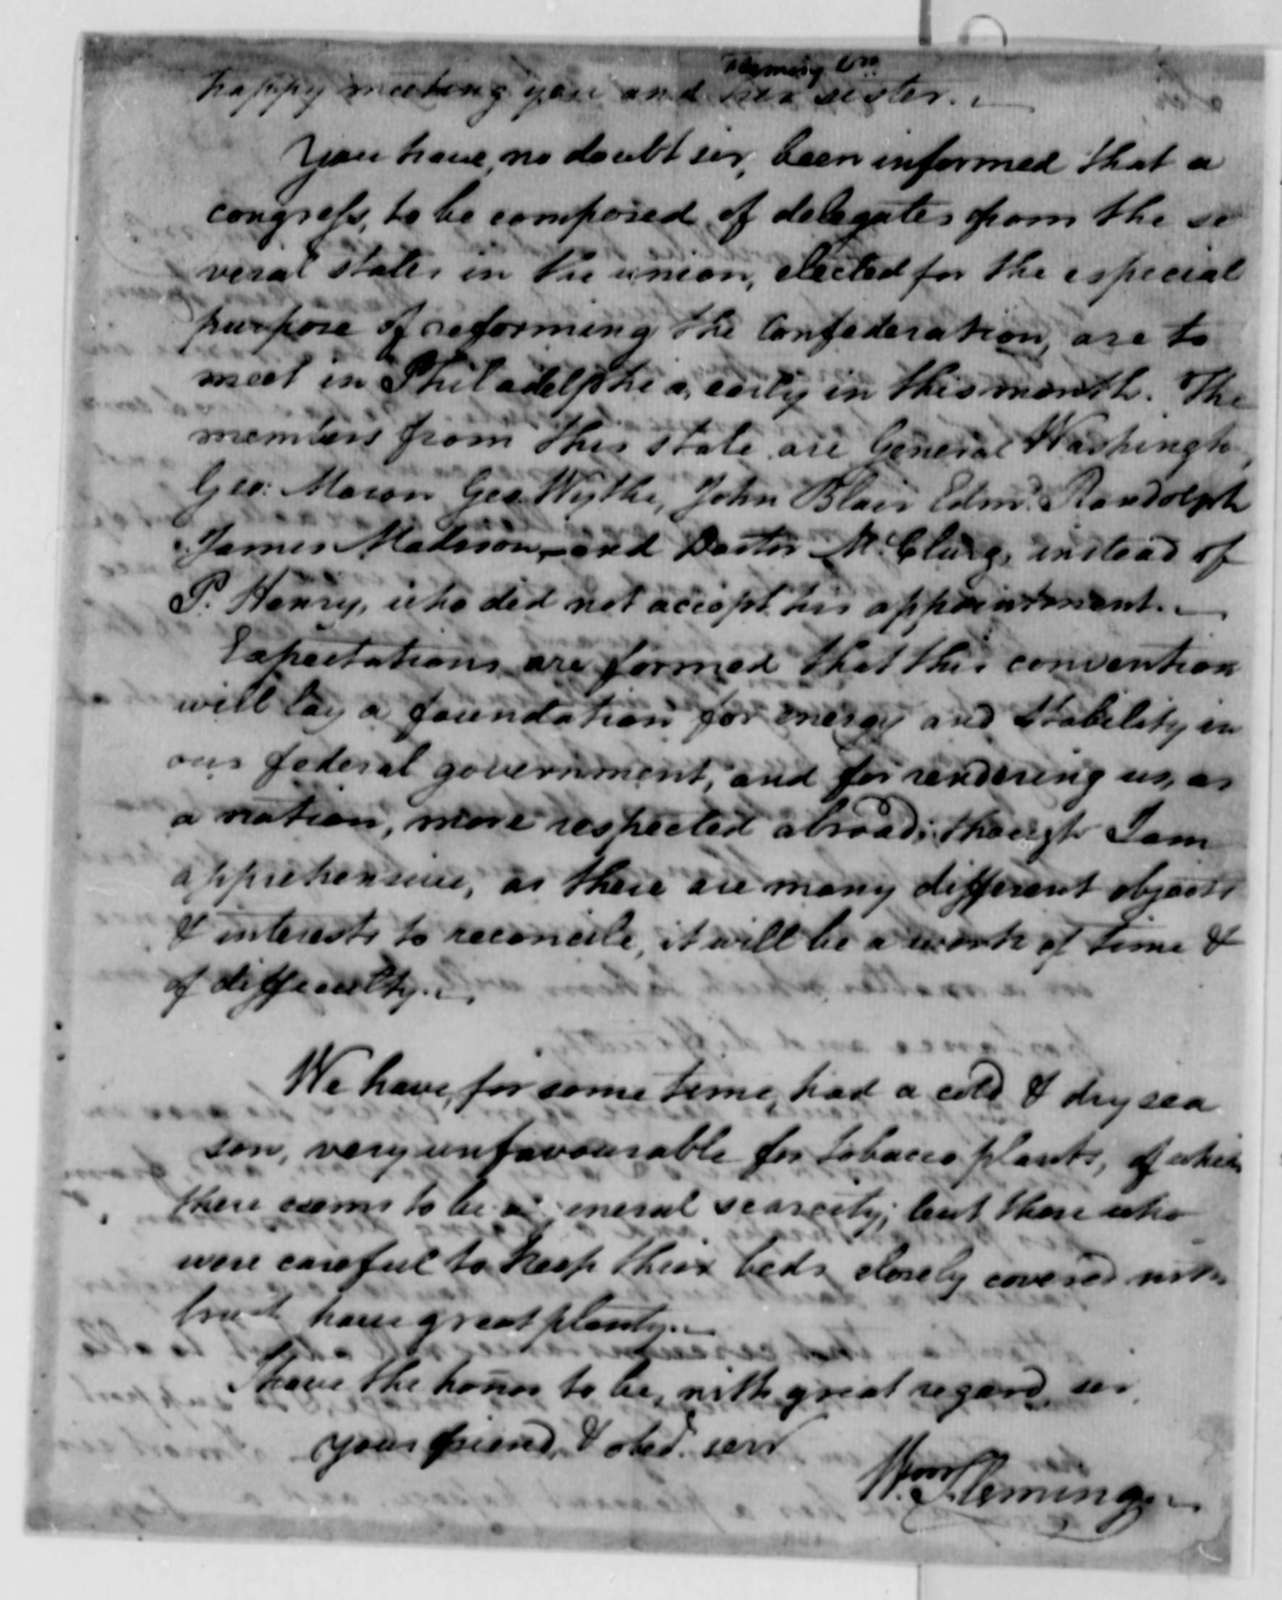 William Fleming to Thomas Jefferson, May 2, 1787, Enclosed with John Ammonet Letter of May 10, 1787